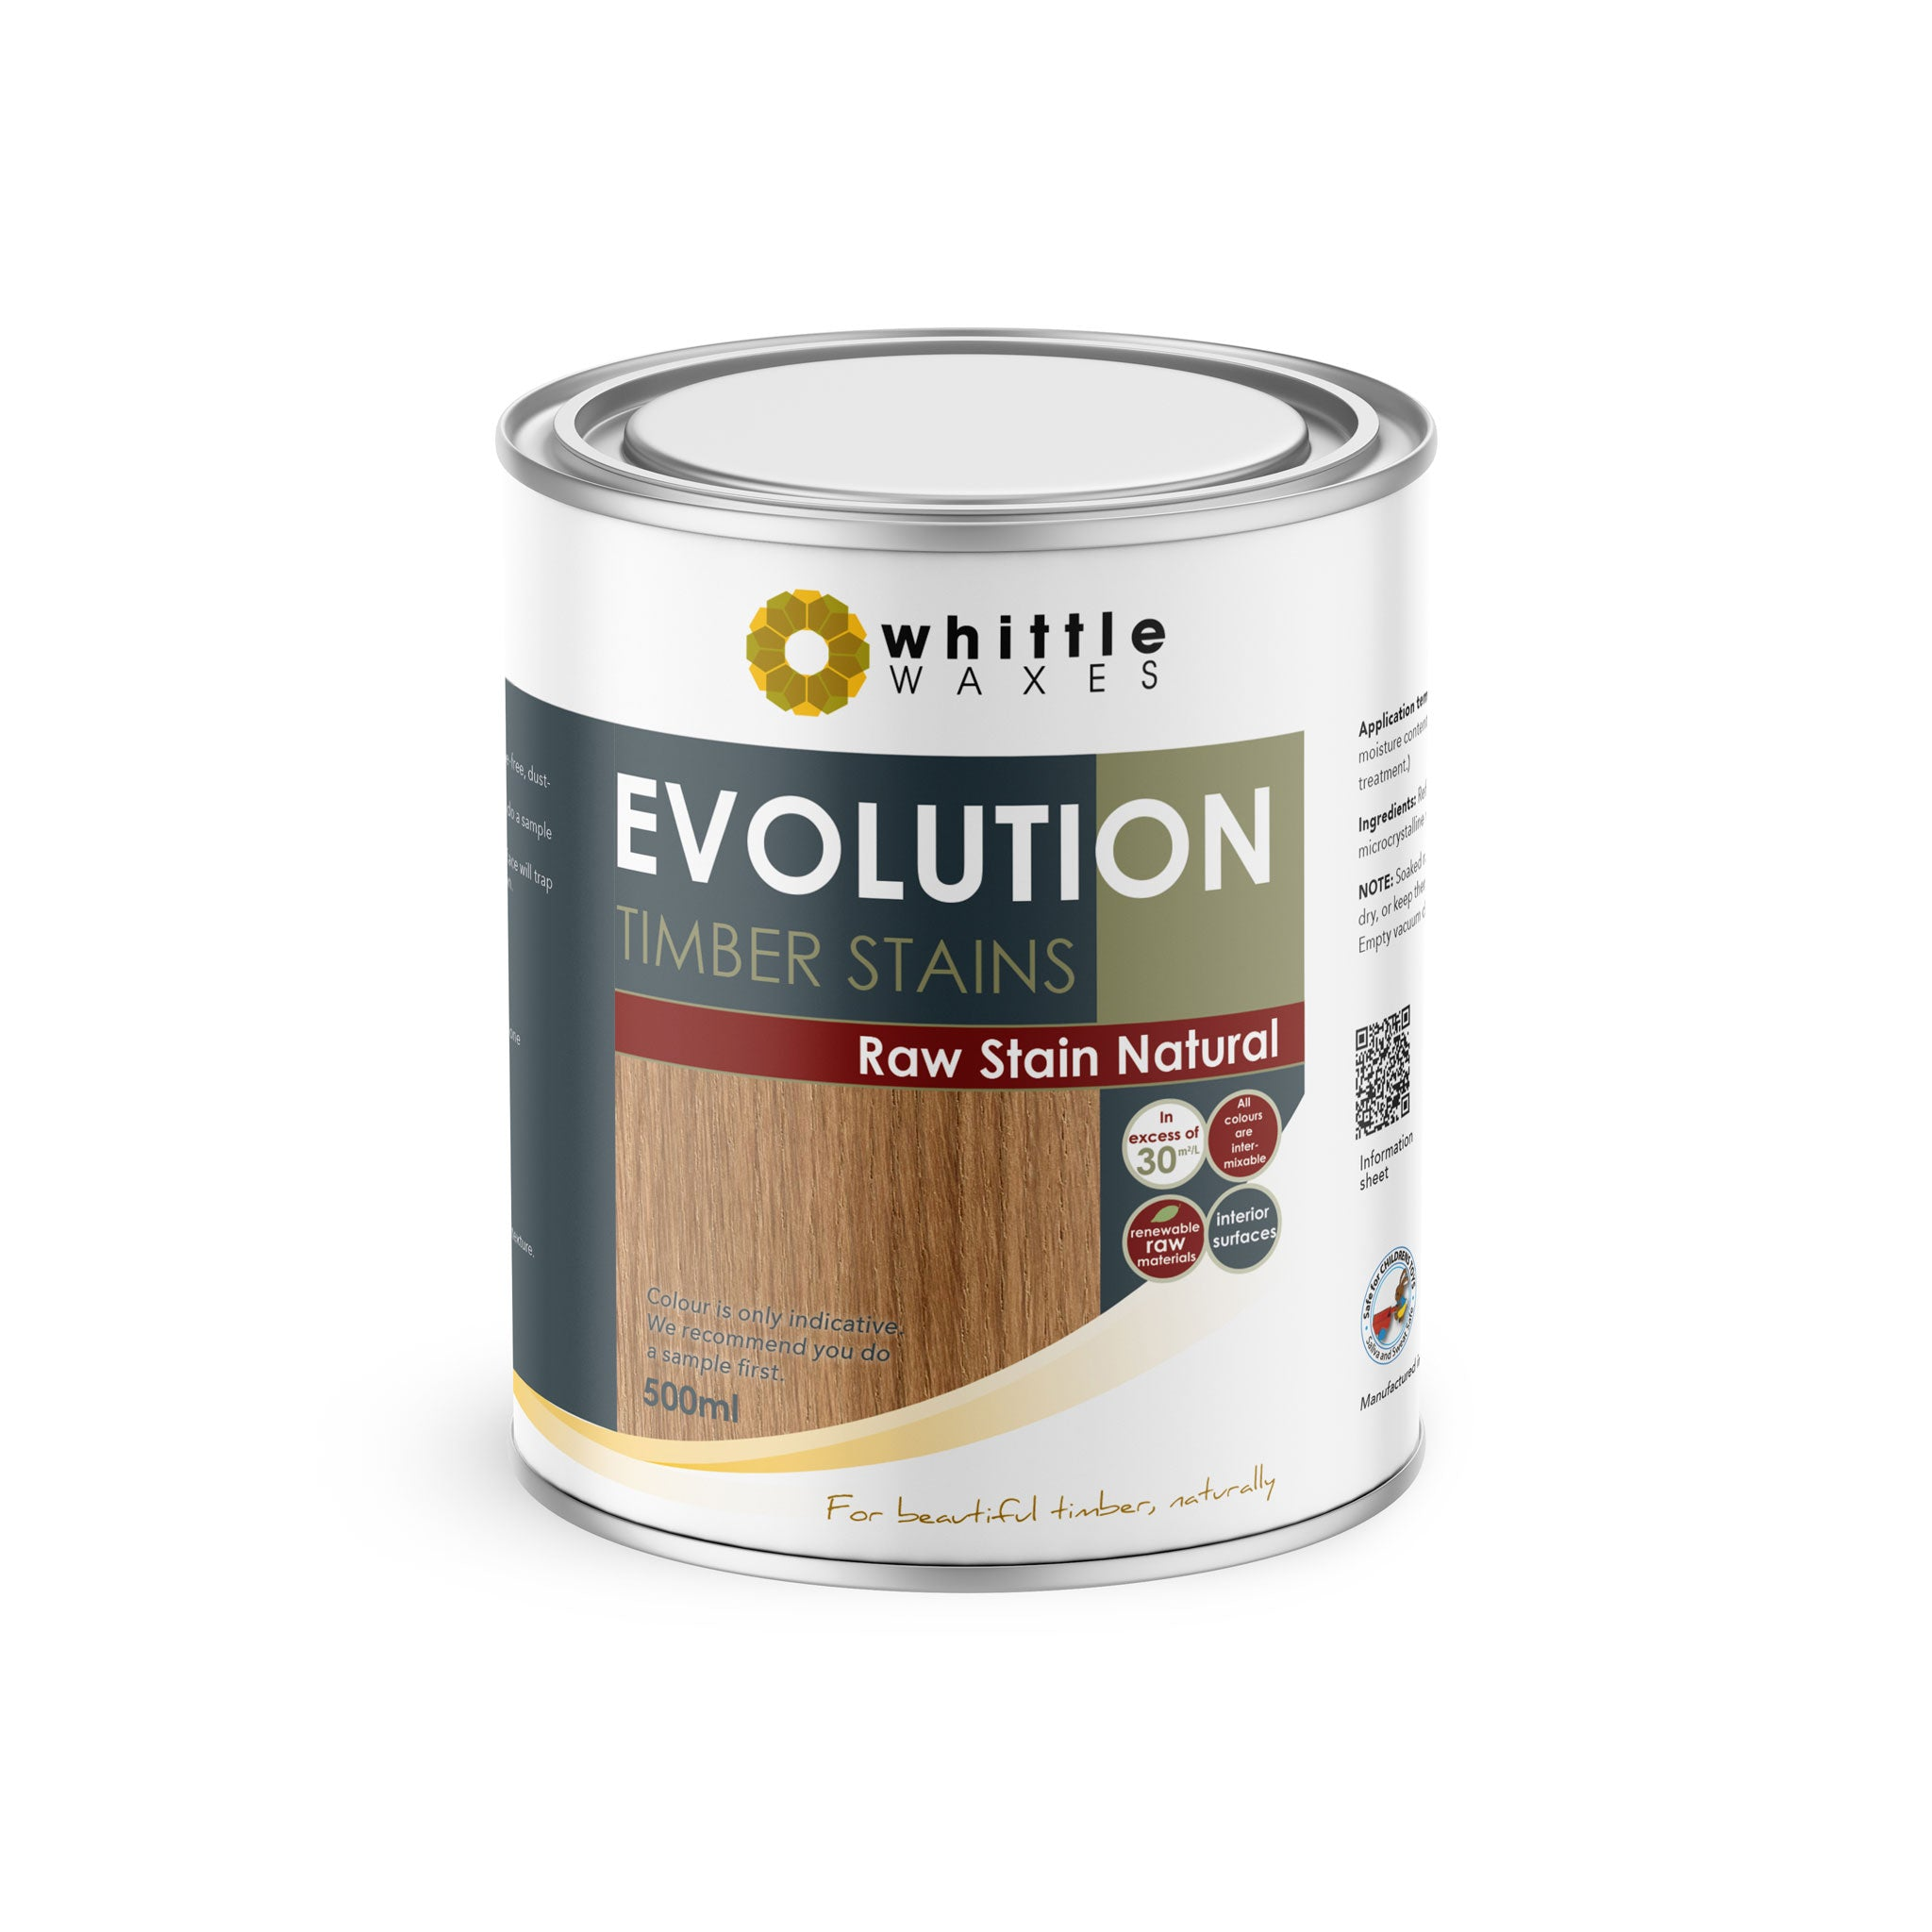 Whittle Waxes Evolution Raw Stain Natural - quality timber stain - 500ml